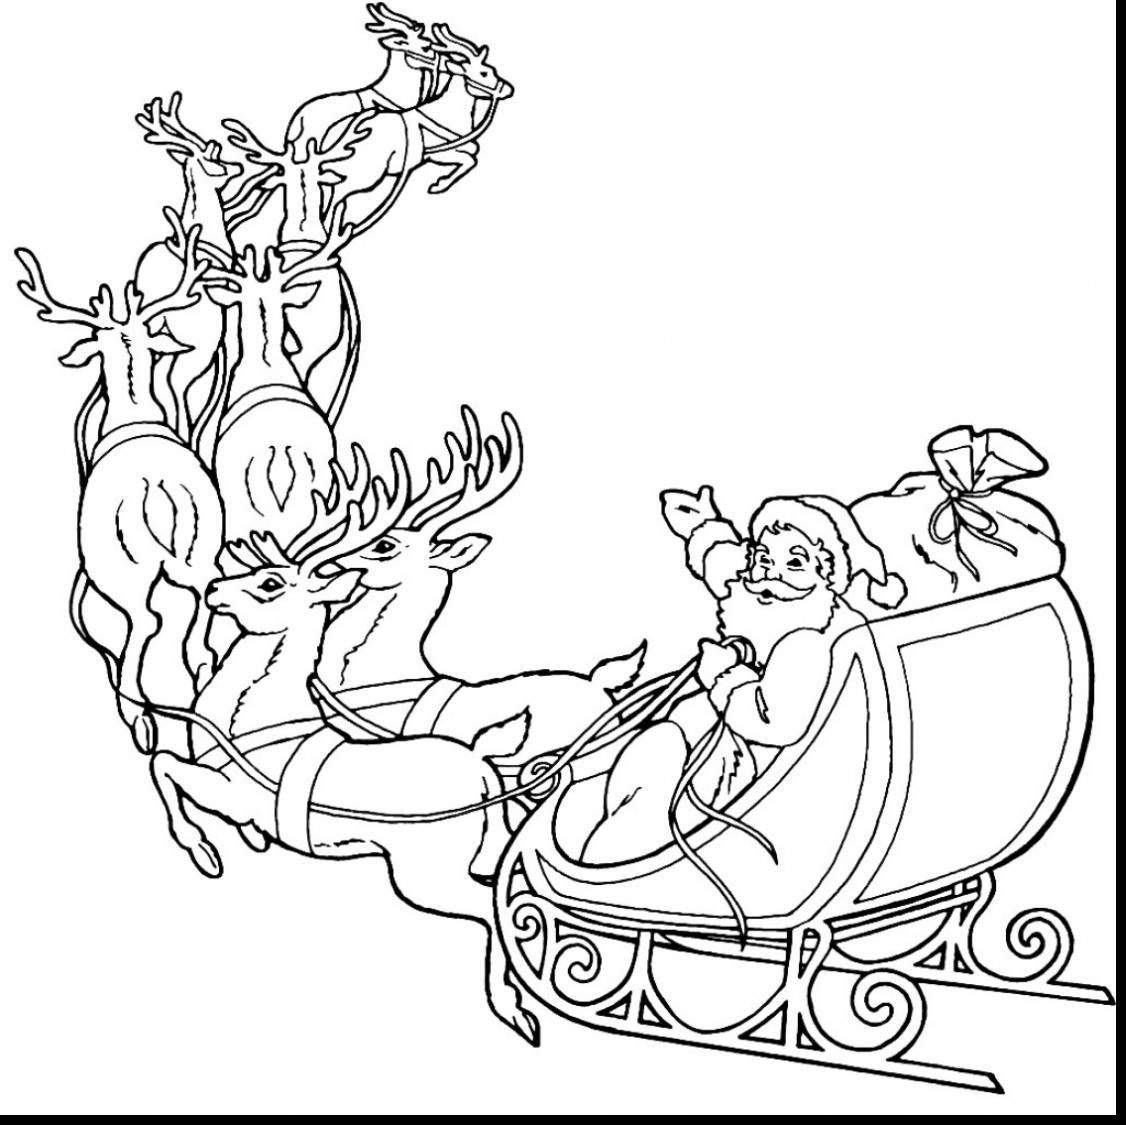 Unbelievable Santa Claus And Reindeer Coloring Pages With Reindeer Coloring Page And Reind Santa Coloring Pages Rudolph Coloring Pages Christmas Coloring Pages